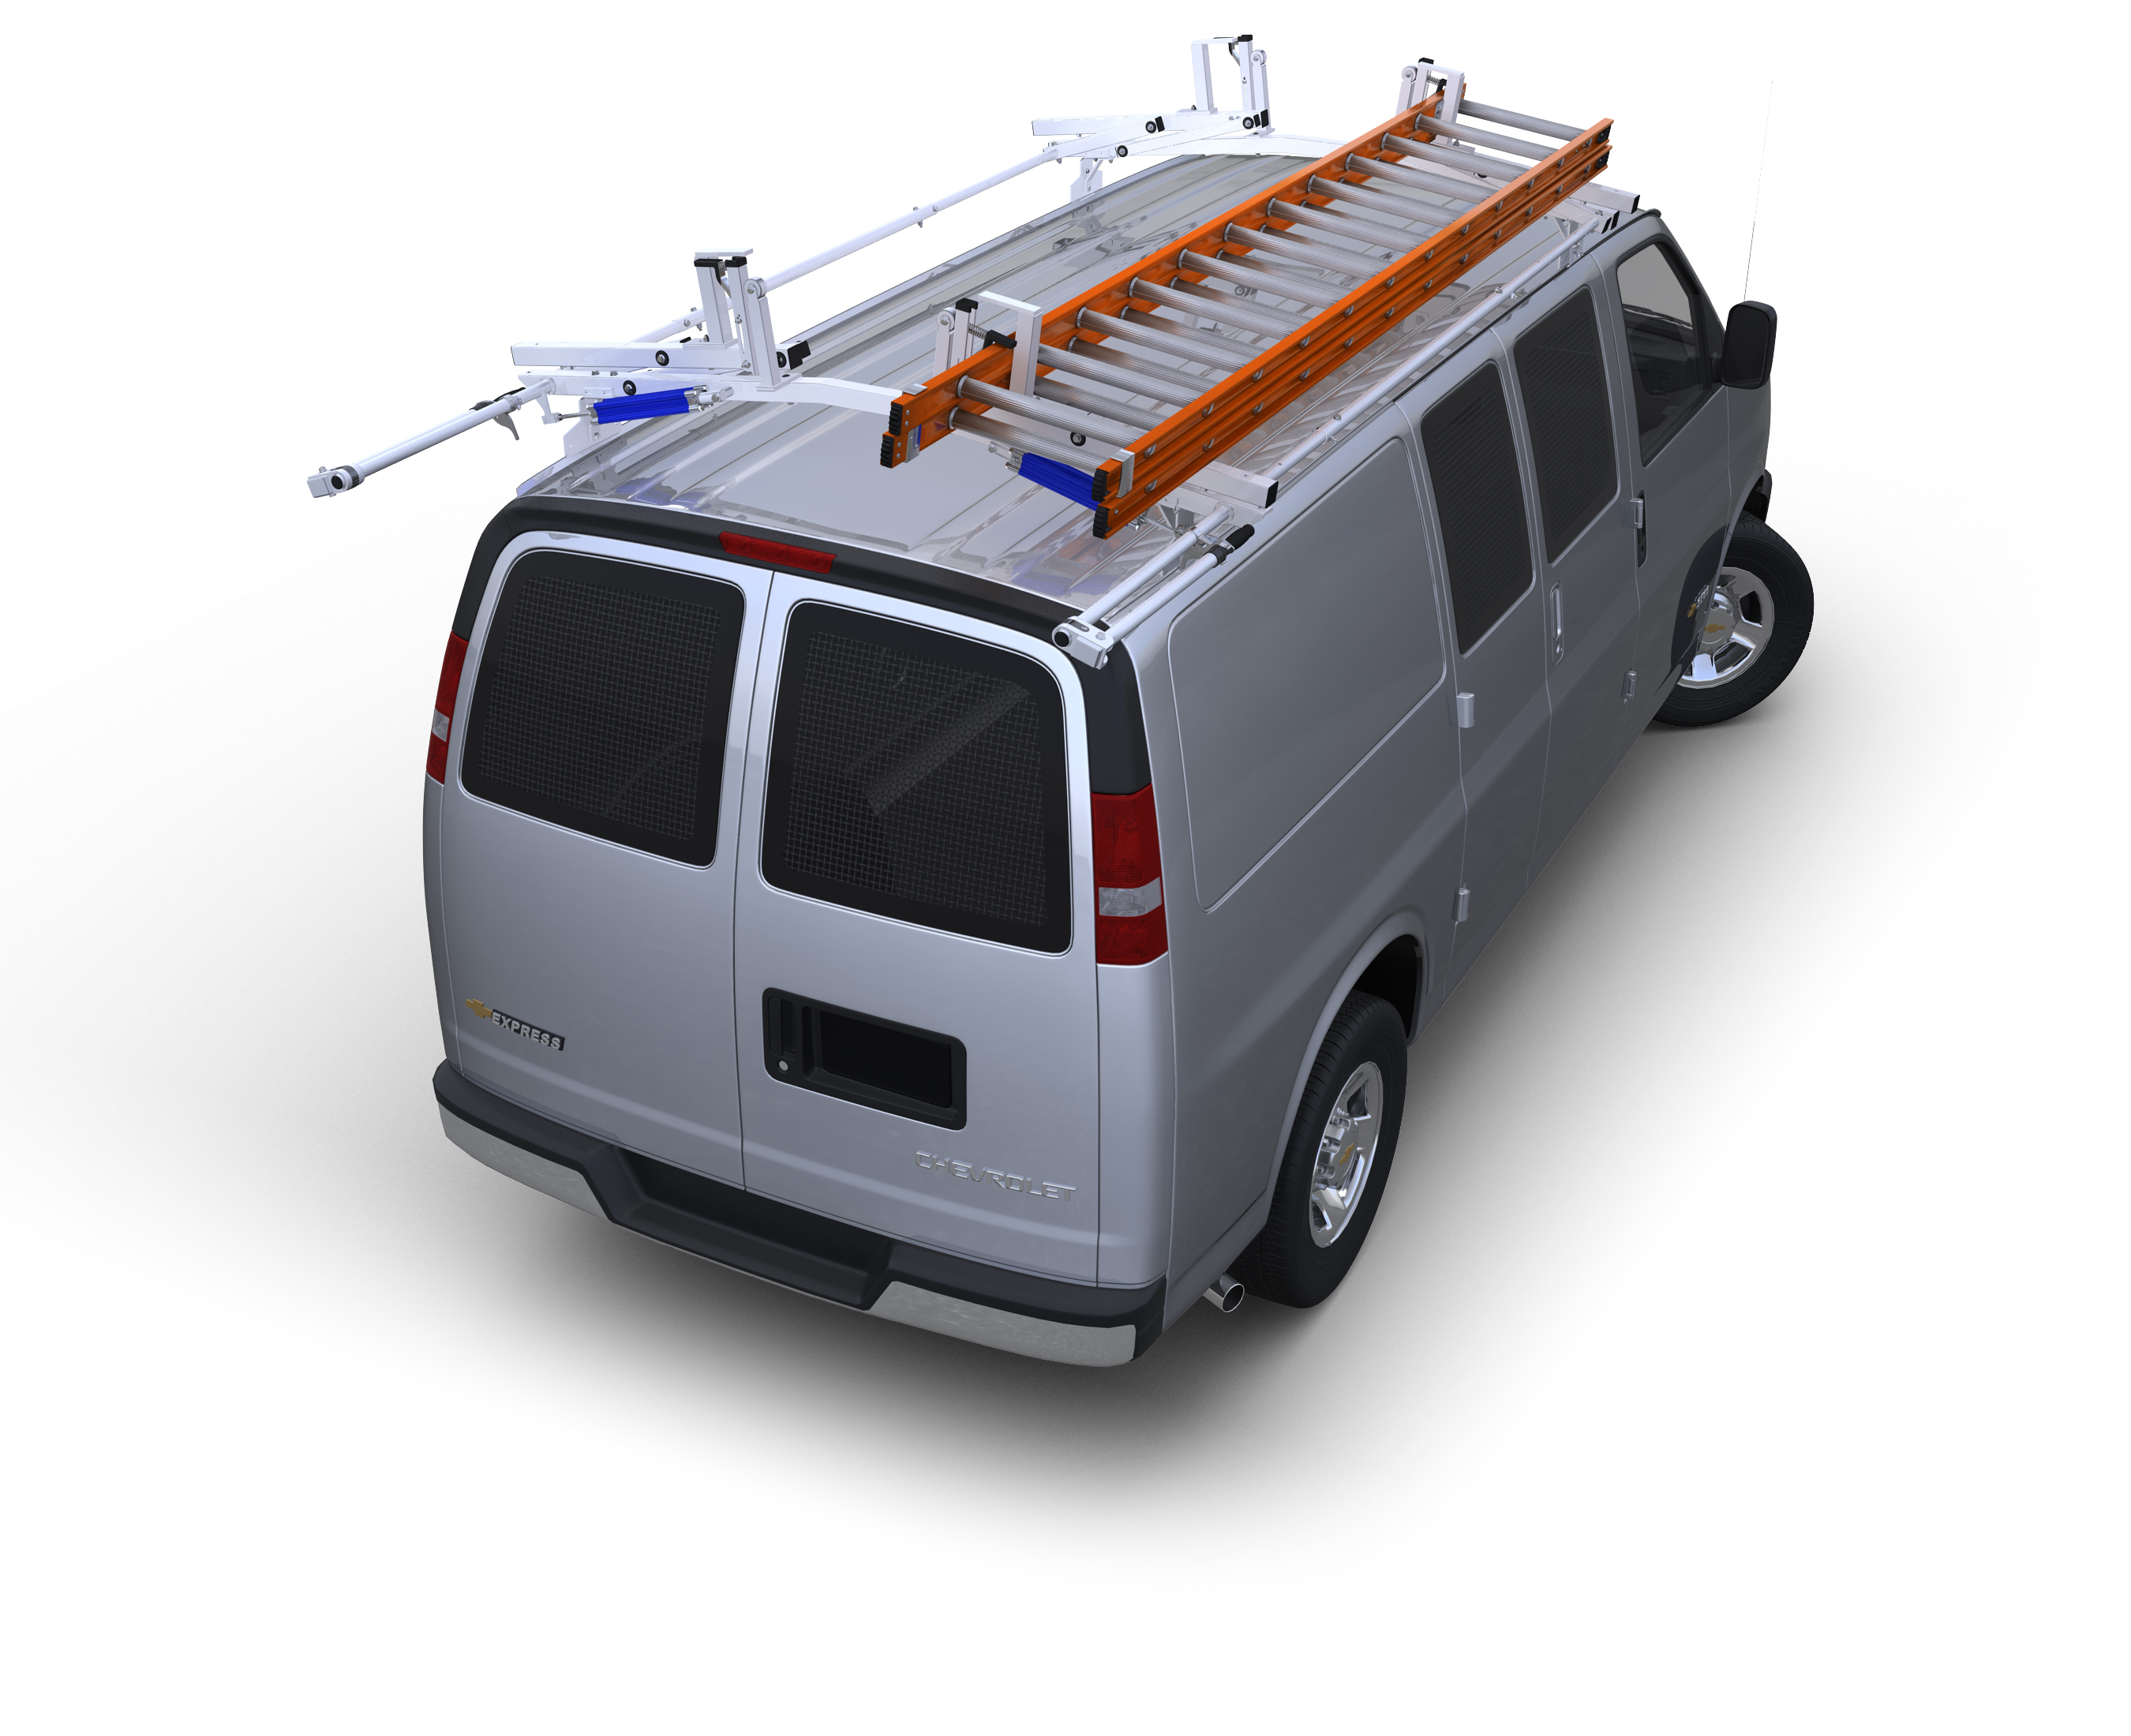 Topper Hot Dip Galvanized Cargo Carrier Rack for the Ford Transit Van